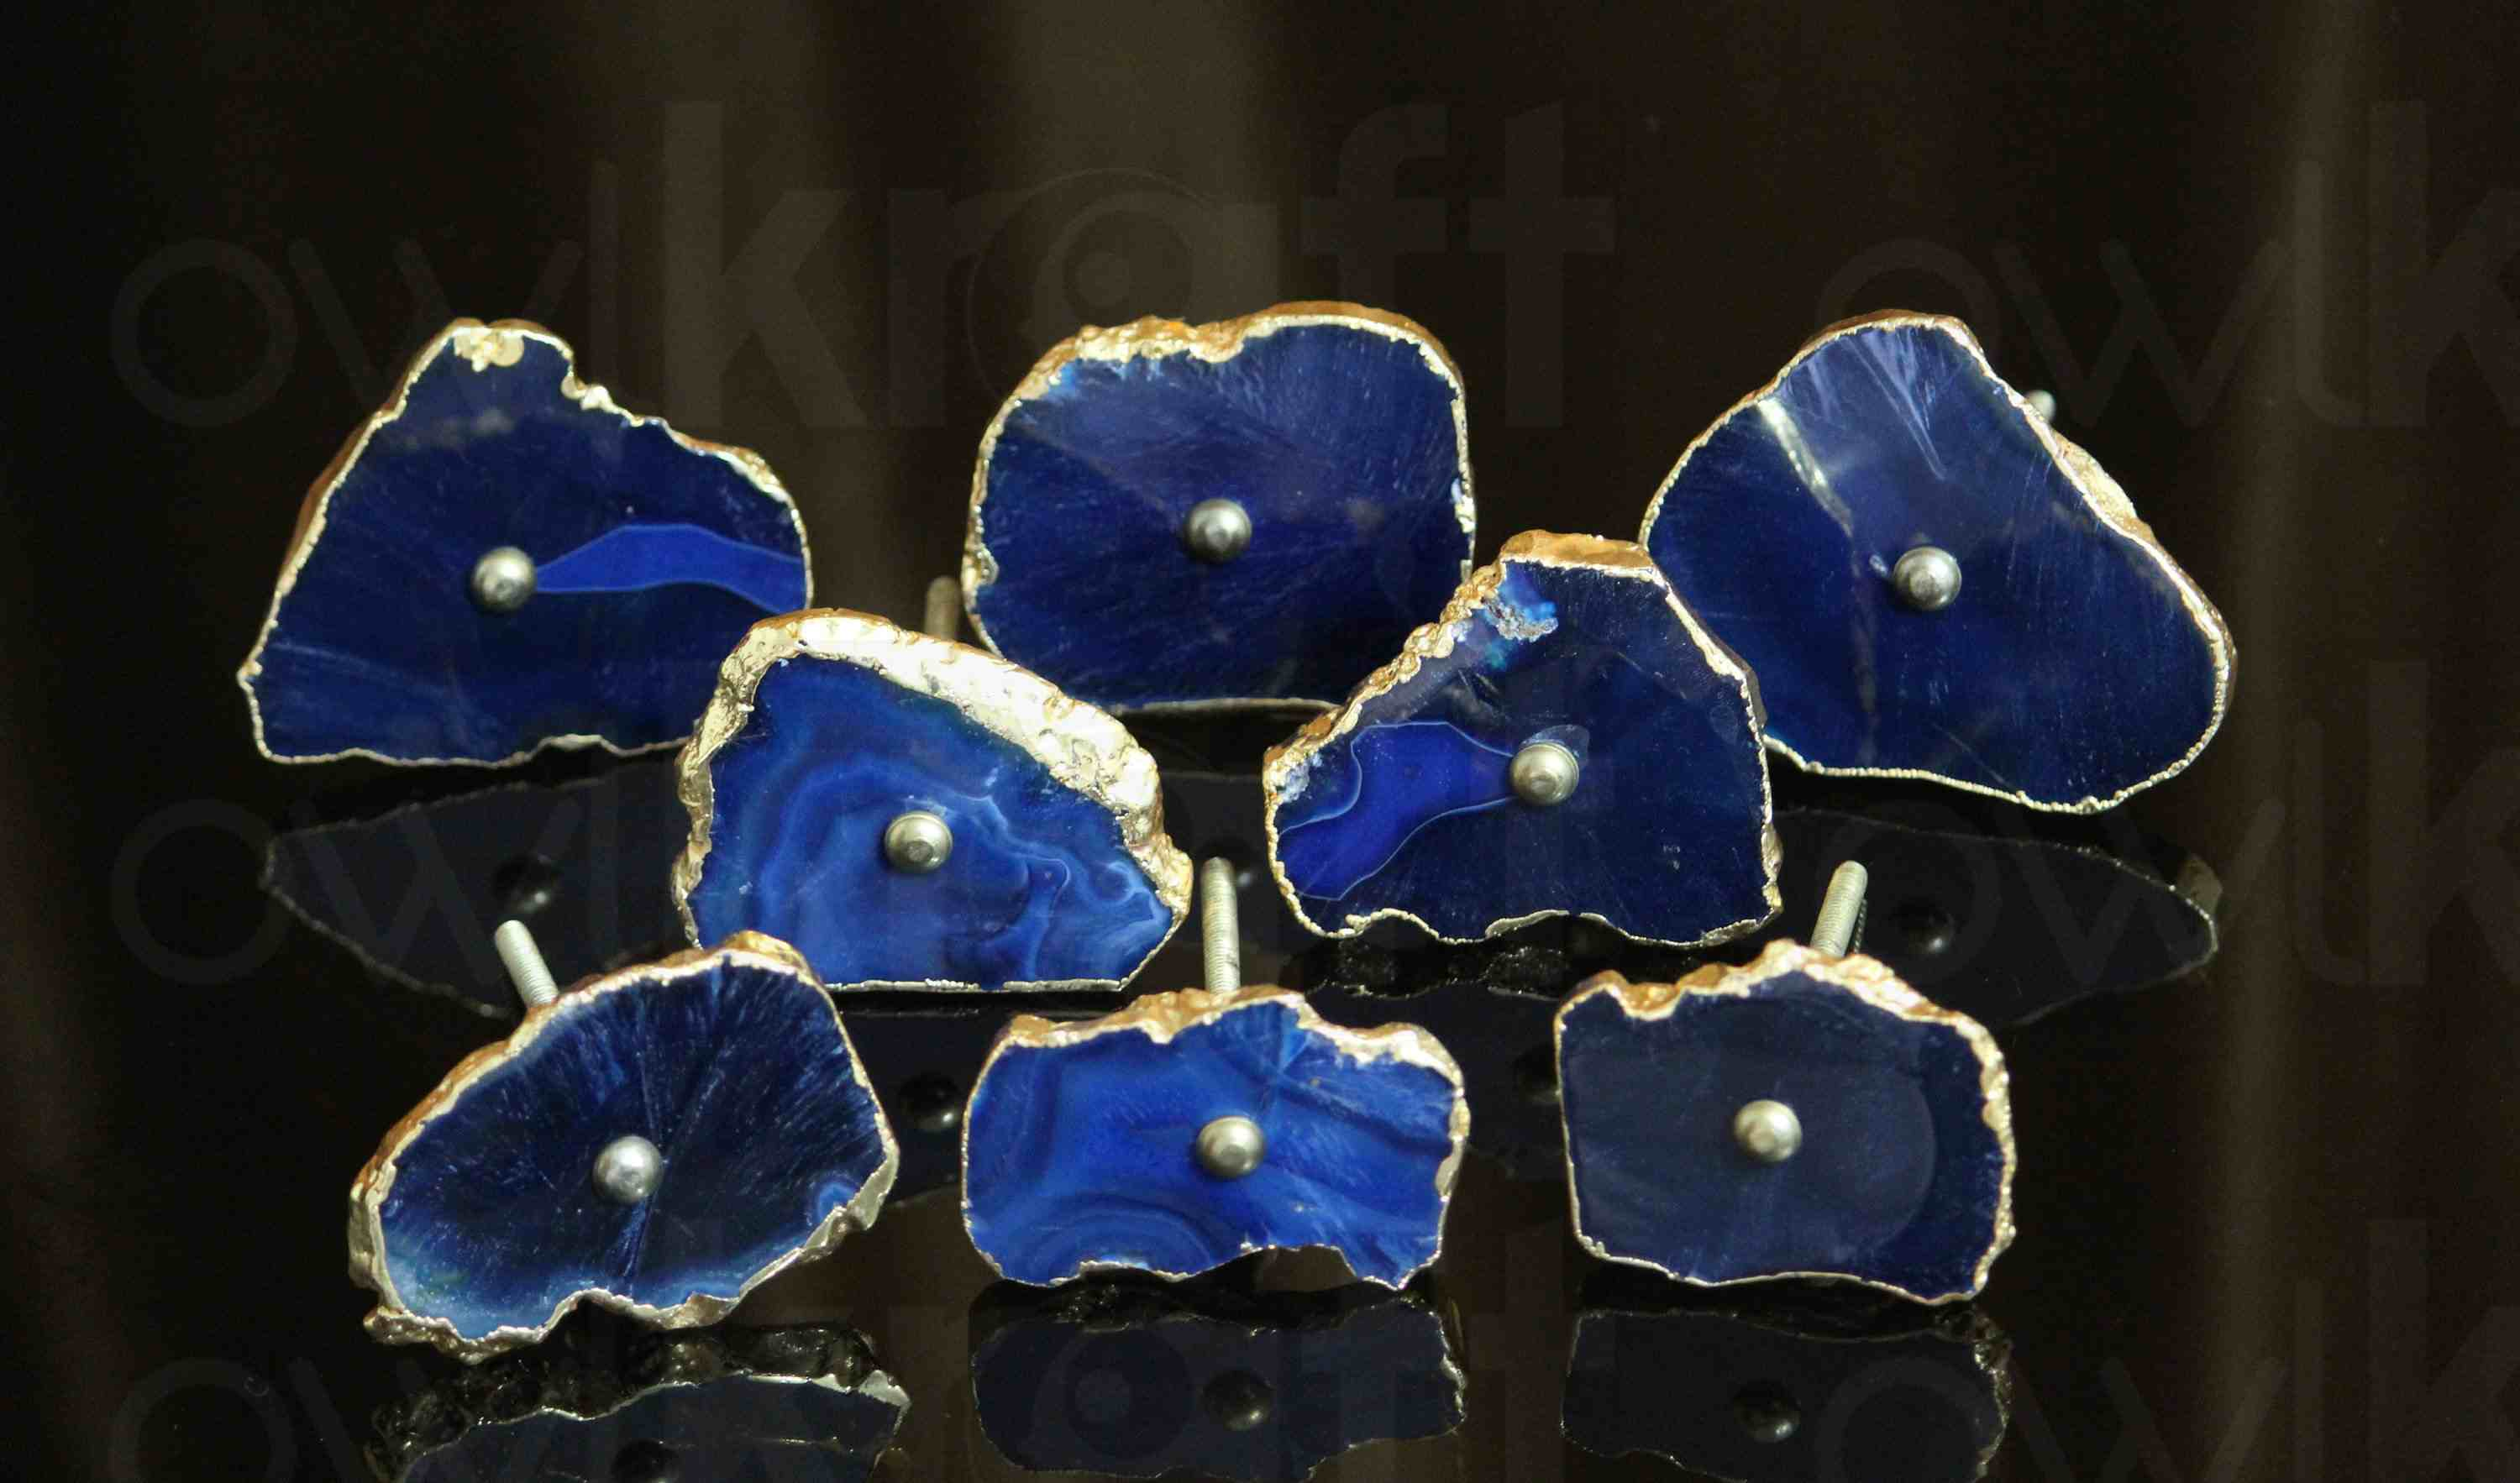 Blue agate knobs for cabinetry